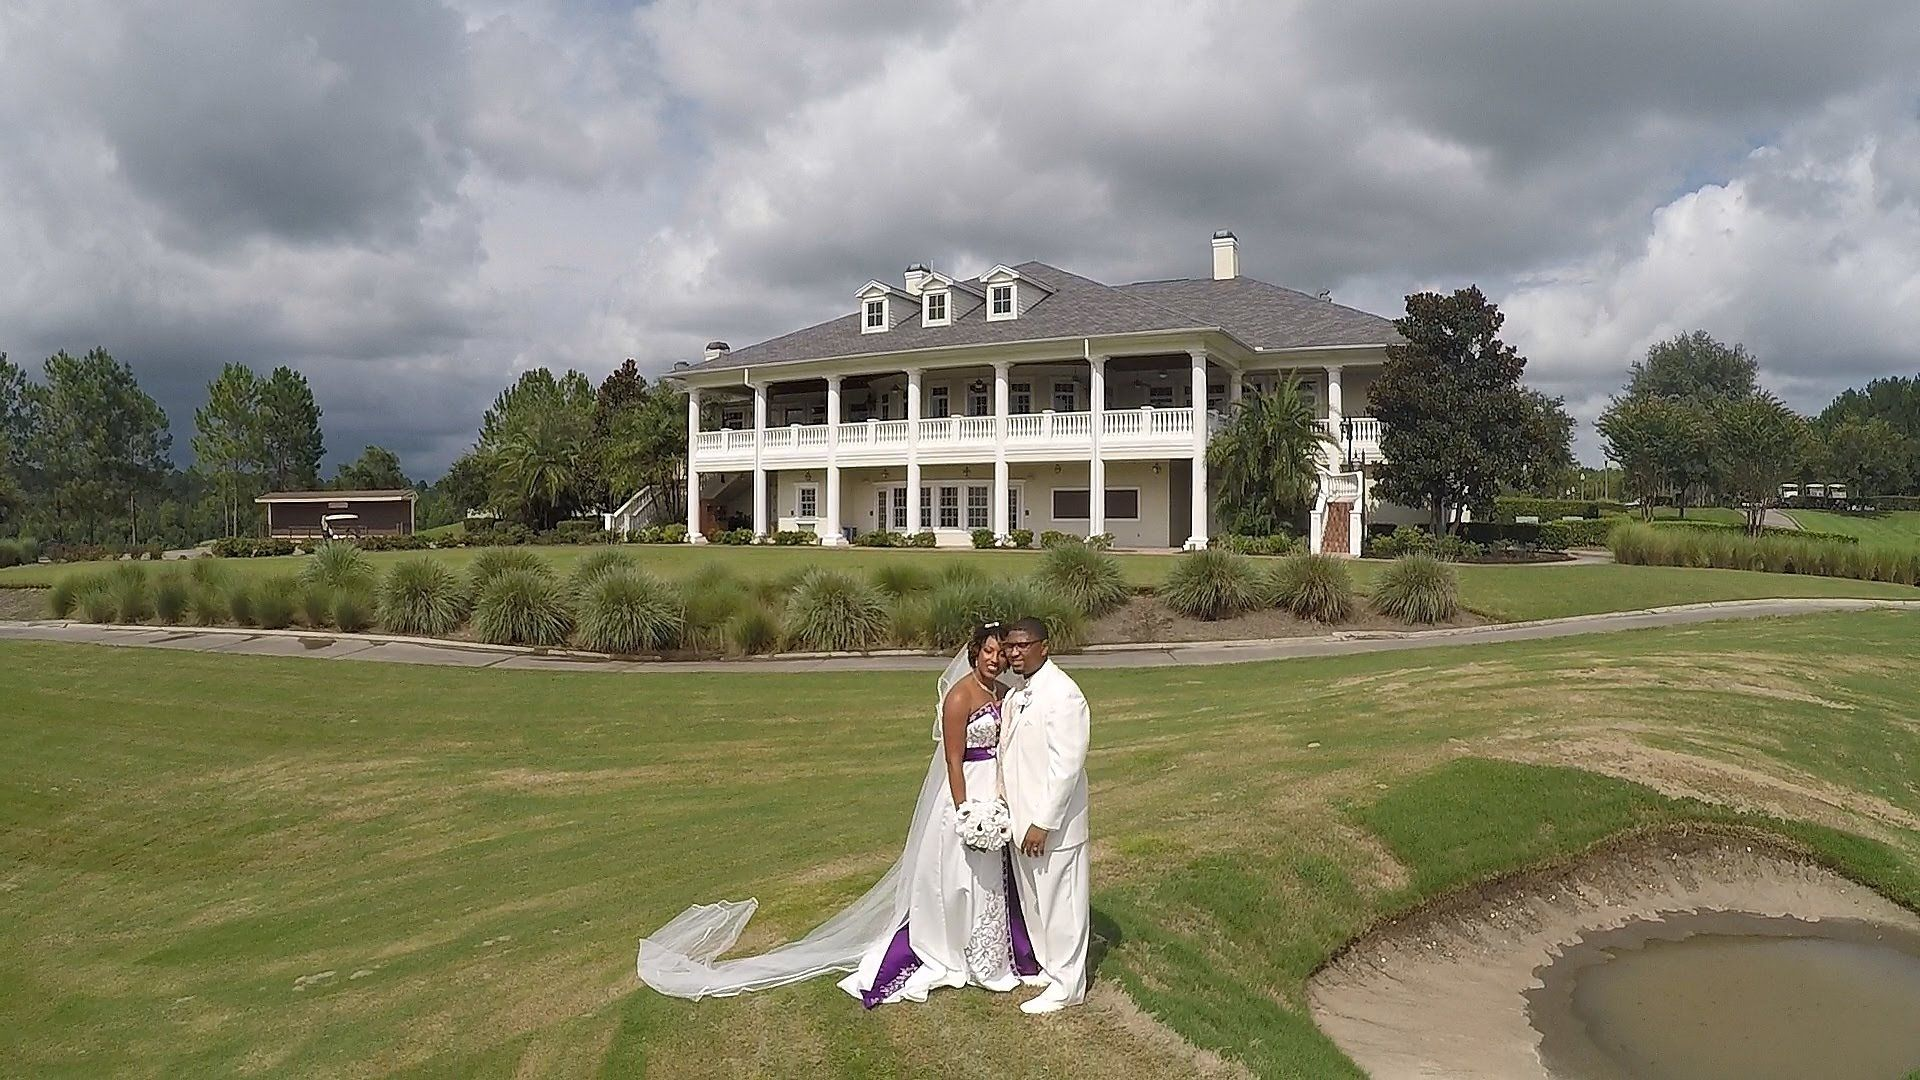 Pin on Weddings By Drone